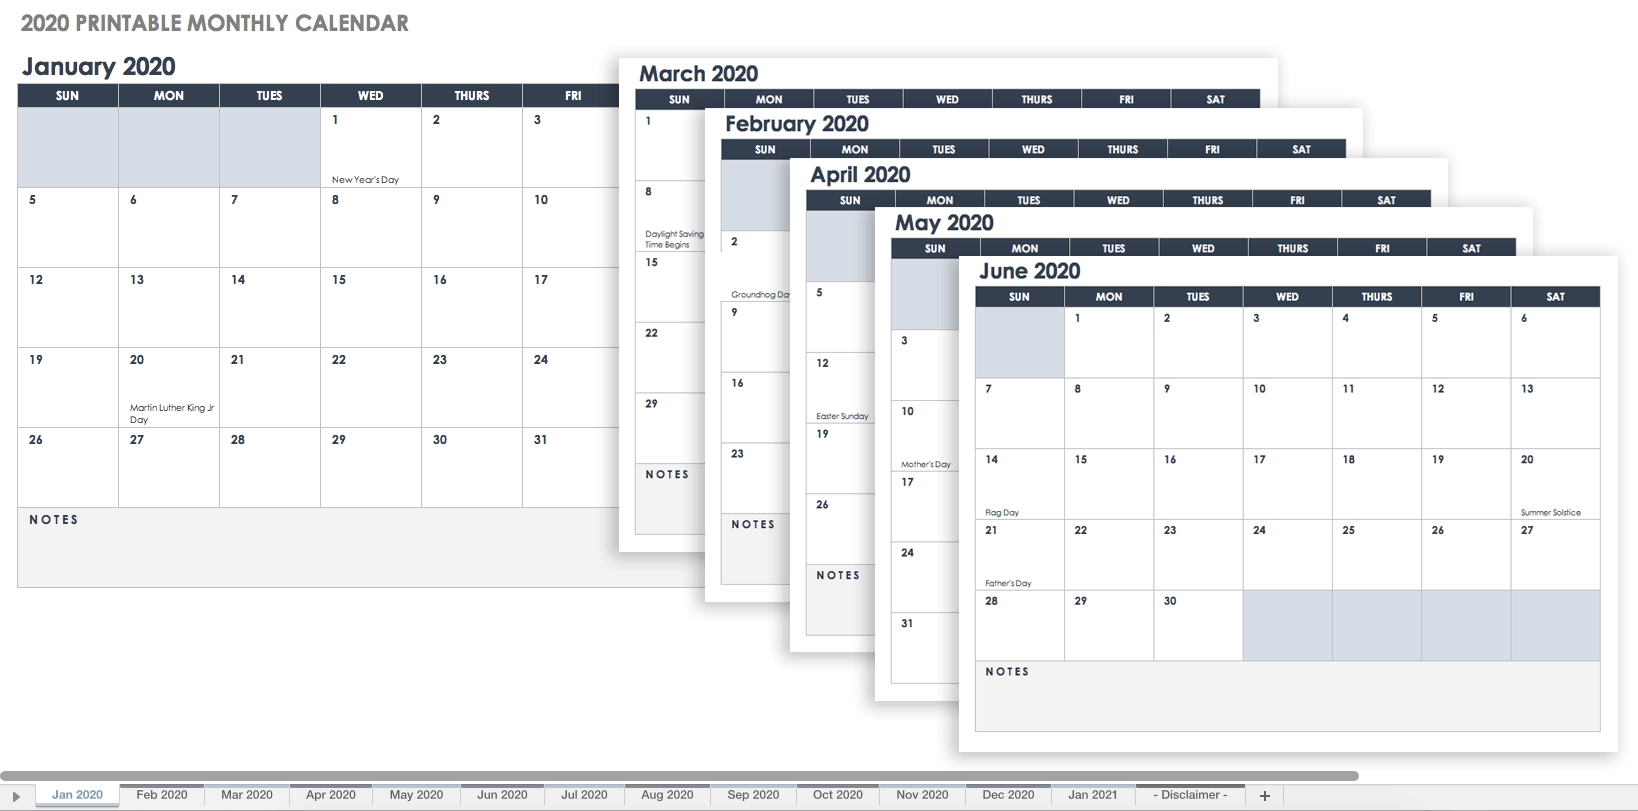 Free, Printable Excel Calendar Templates For 2019 & On | Smartsheet with regard to Free Printable Calendars 2019-2020 To Edit